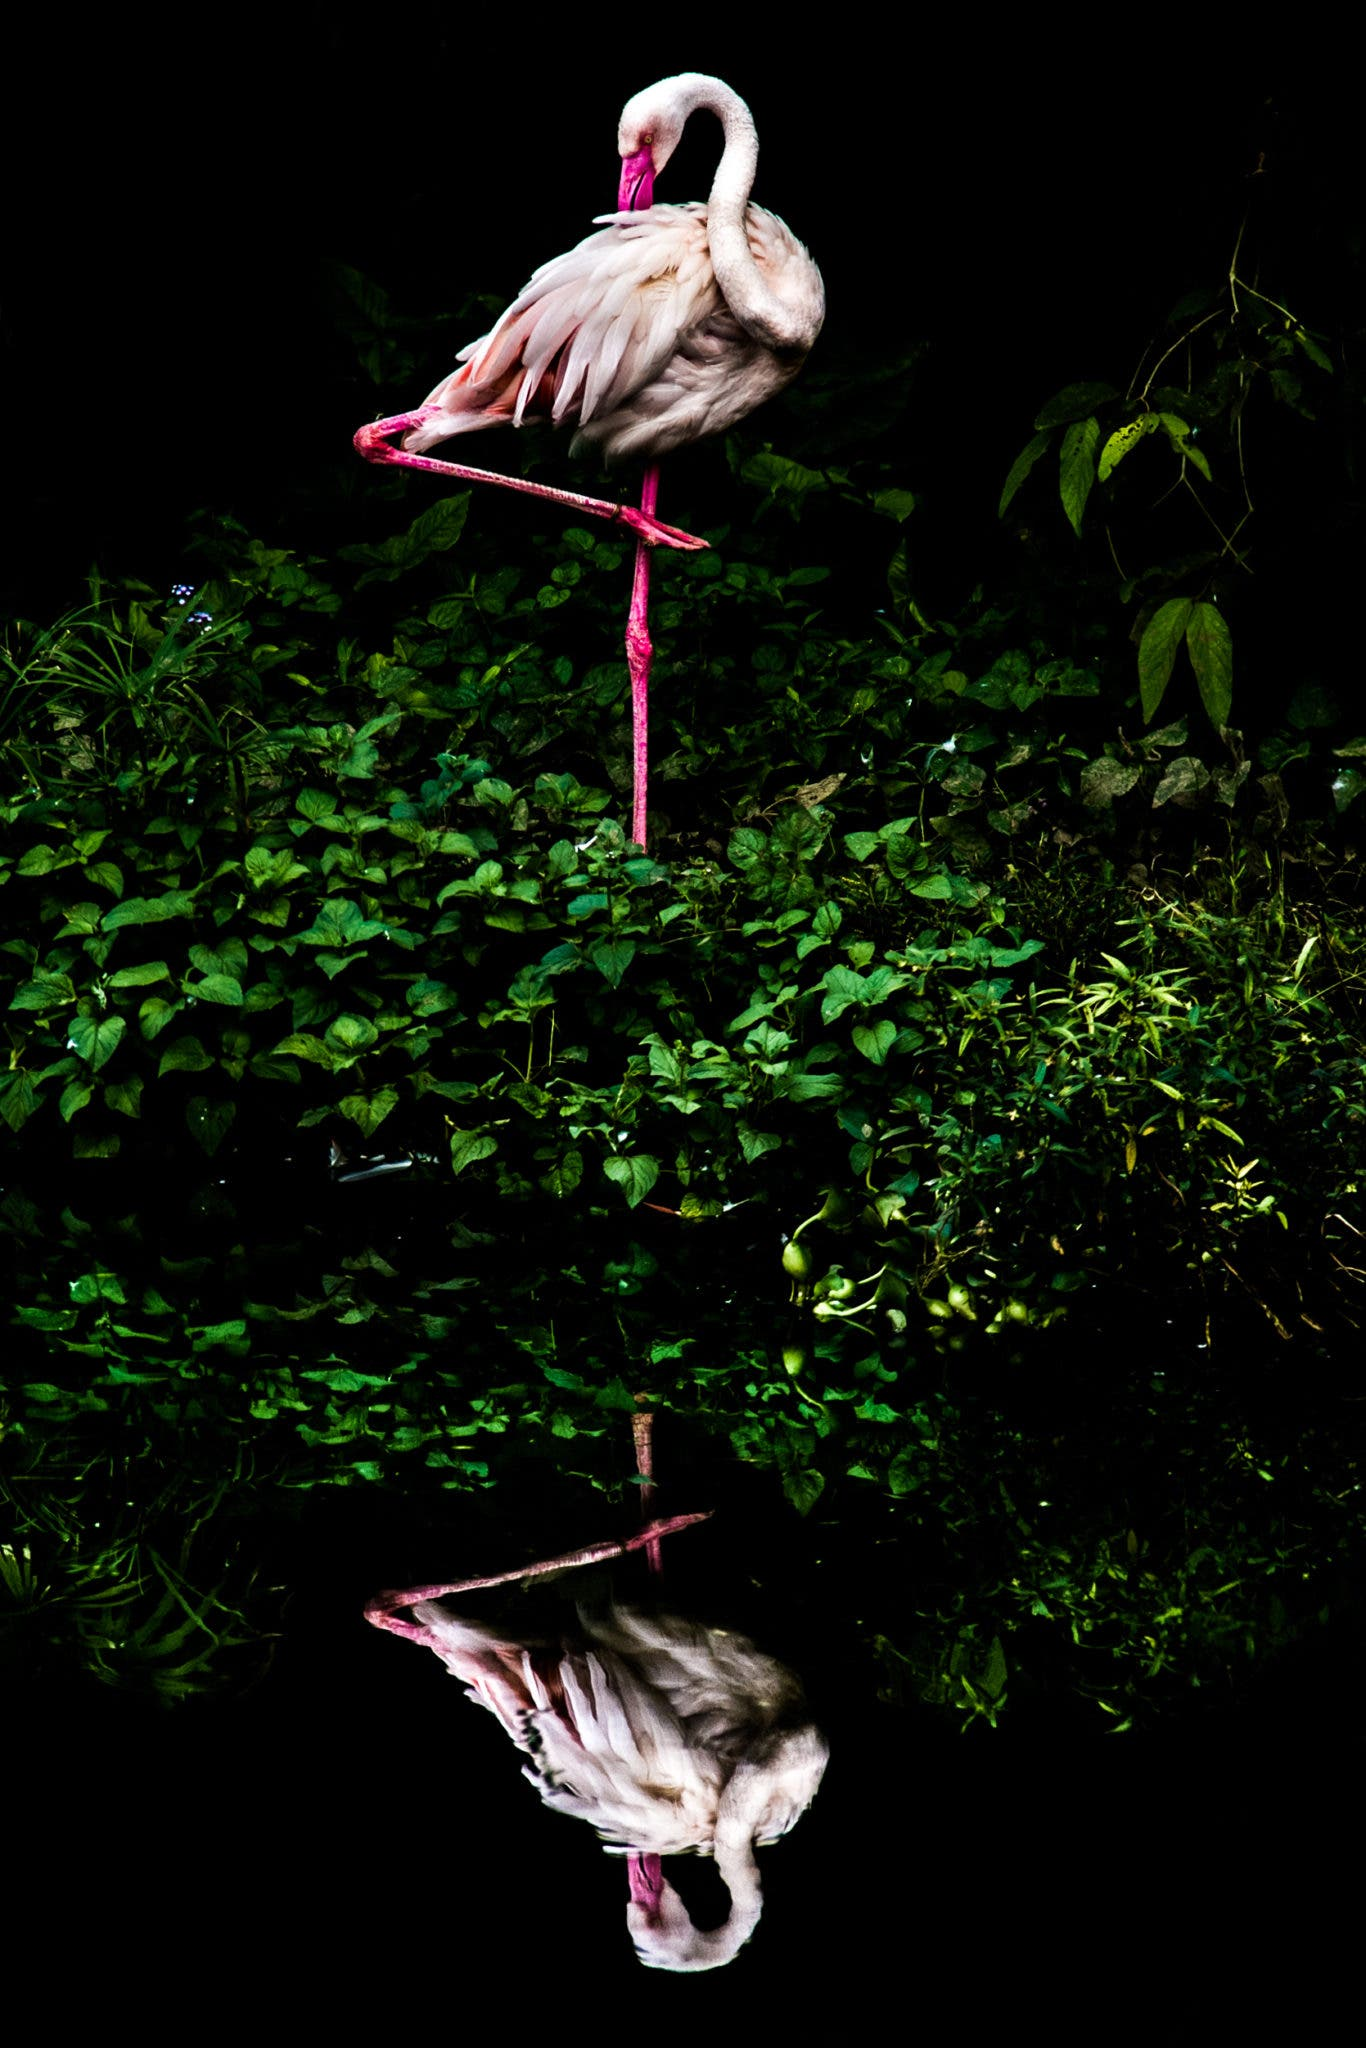 Image Description: I've used water reflection let the grass looks like a cloud. So I named It Cloud Flamingo. Copyright:  Steiner Wang, Taiwan, Shortlist, Open Nature and Wildlife, 2016 Sony World Photography Awards